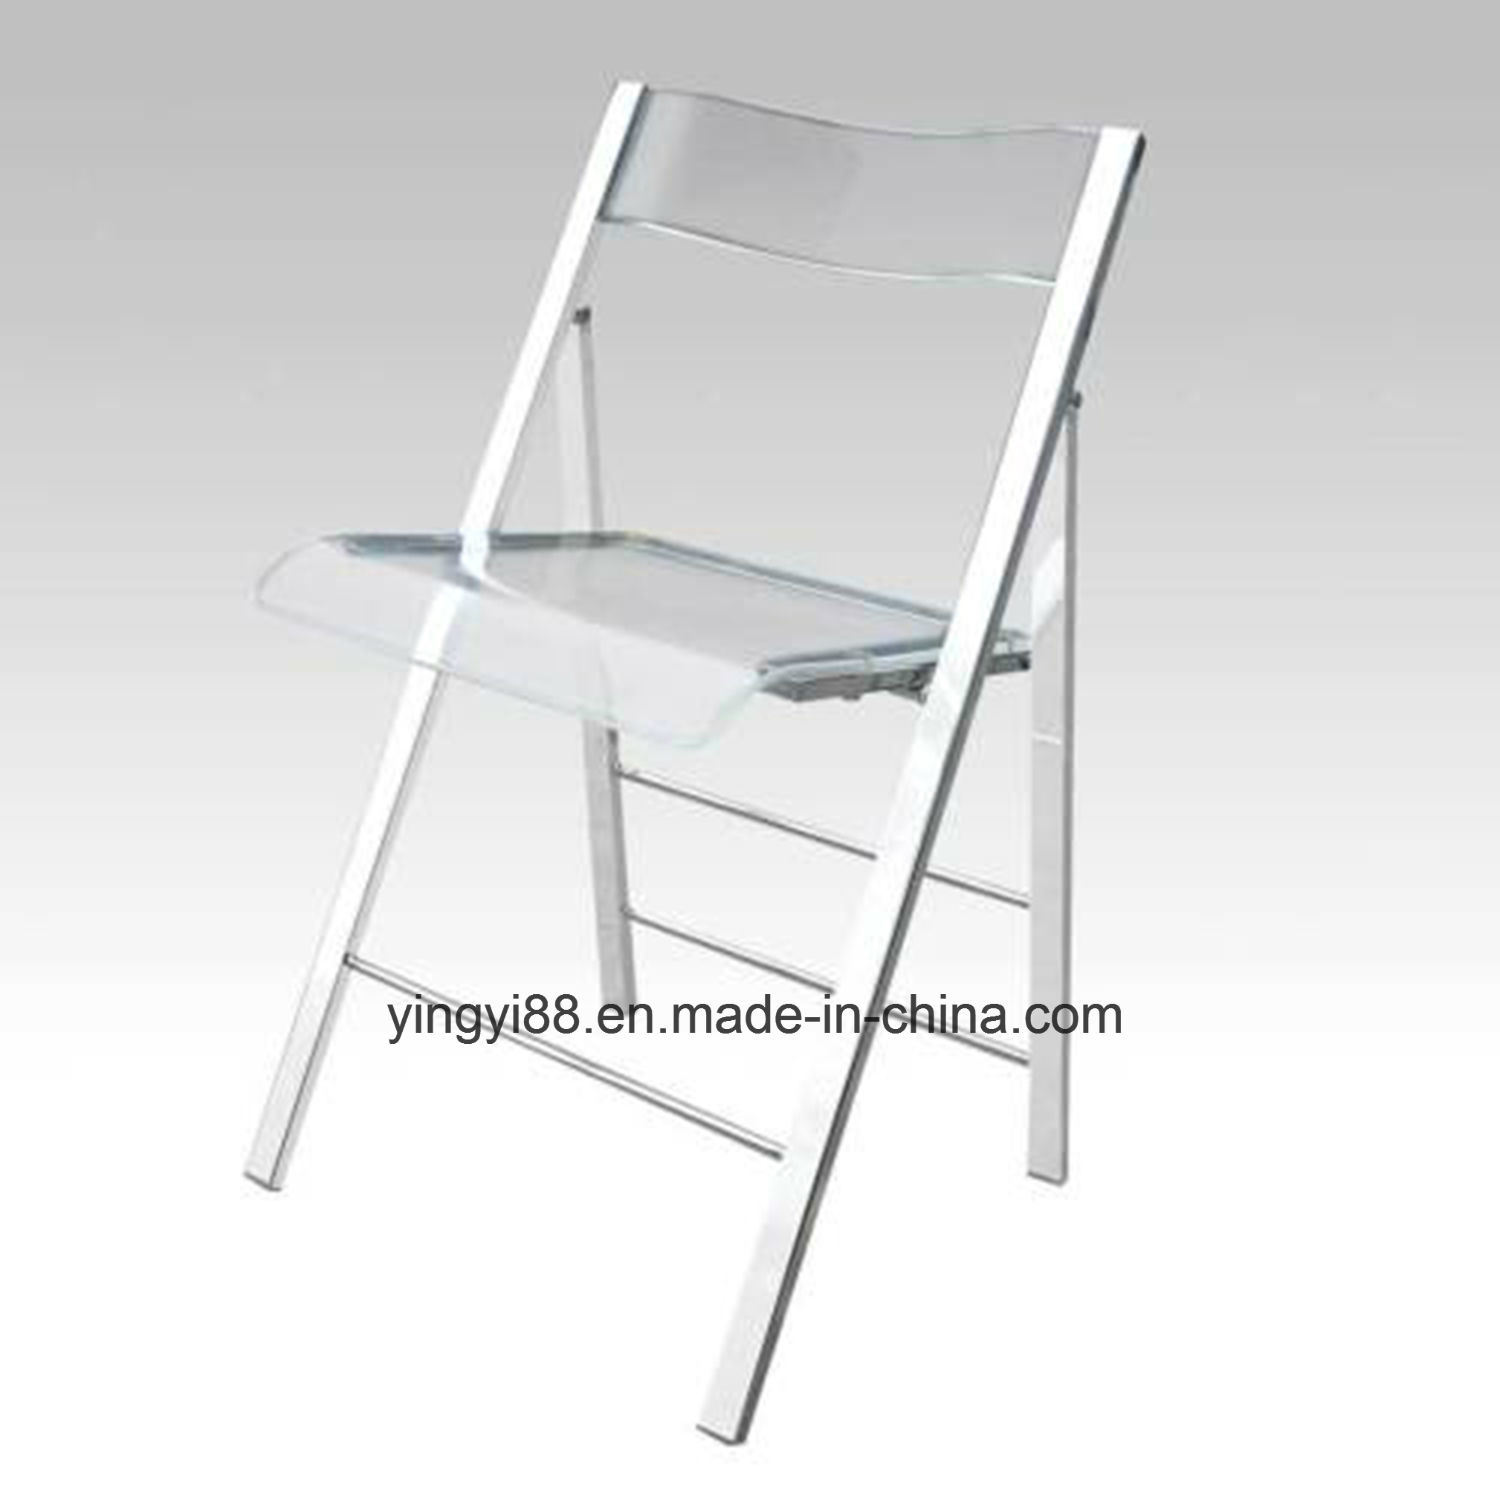 Astounding Hot Item Modern Clear Acrylic Steel Folding Chair Spiritservingveterans Wood Chair Design Ideas Spiritservingveteransorg